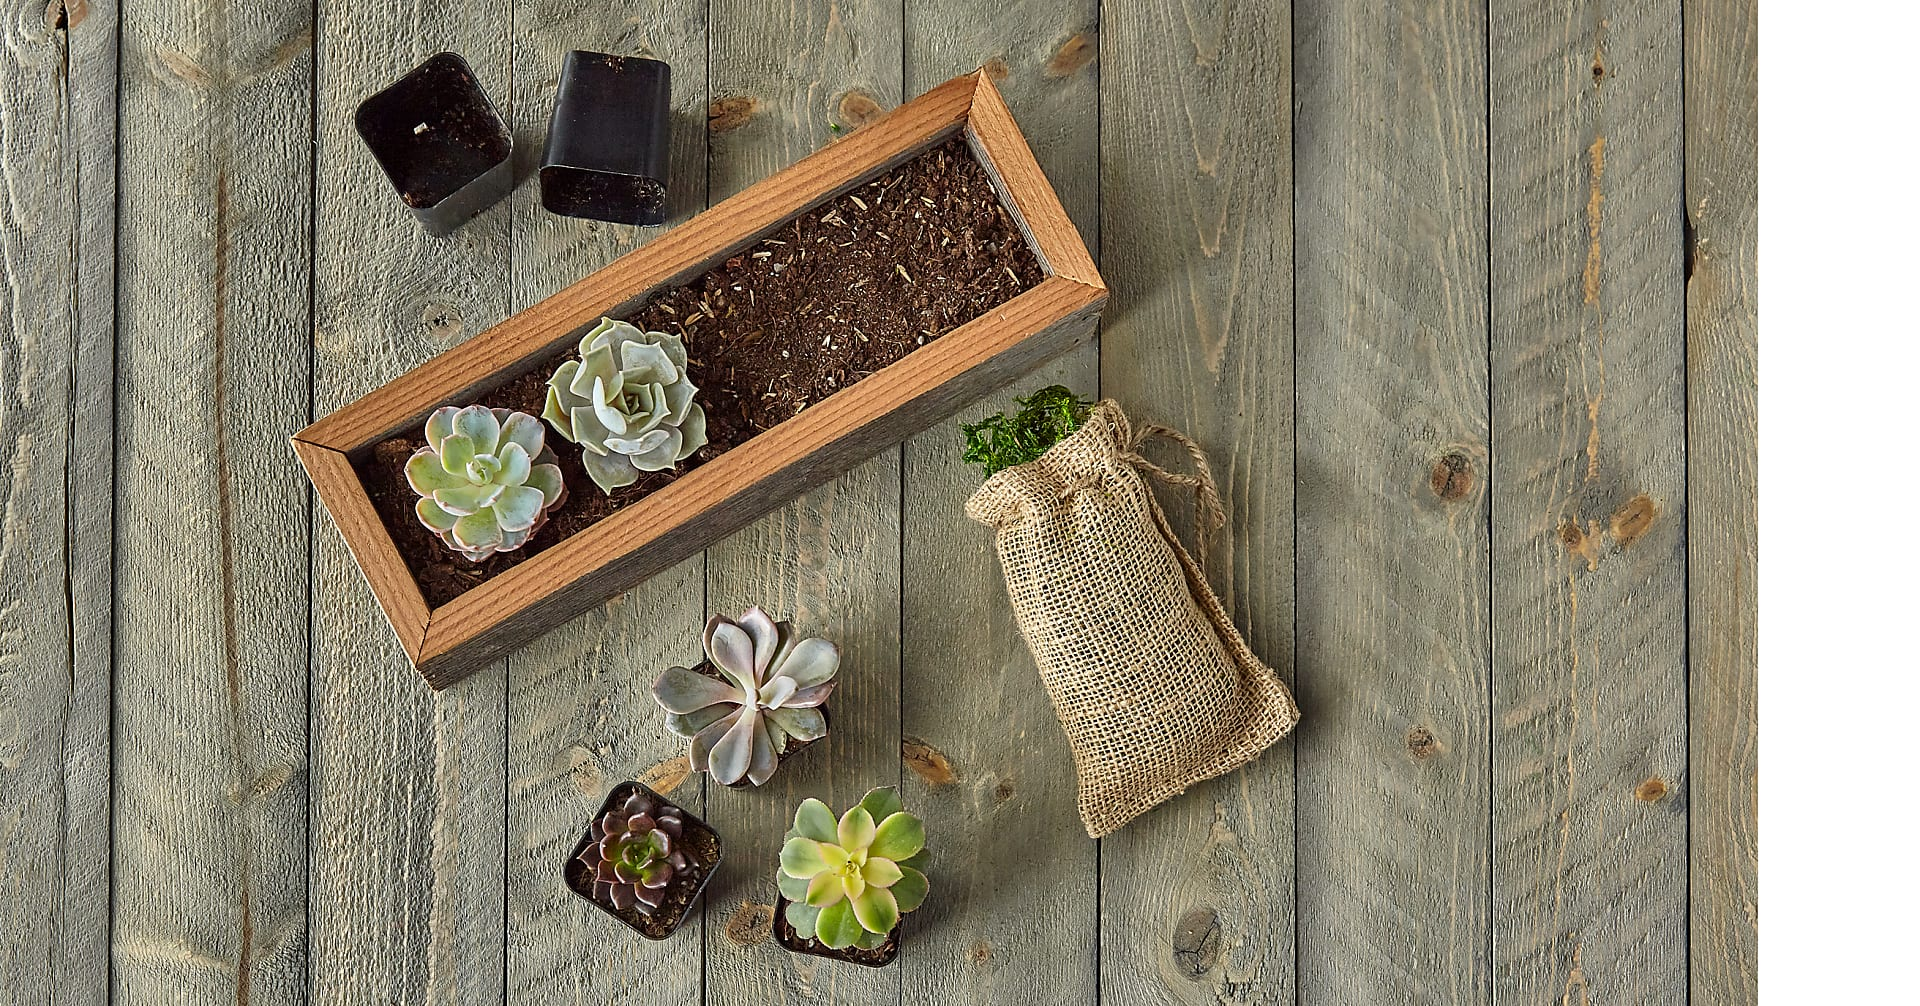 Succulent Garden DIY Kit - Image 6 Of 8